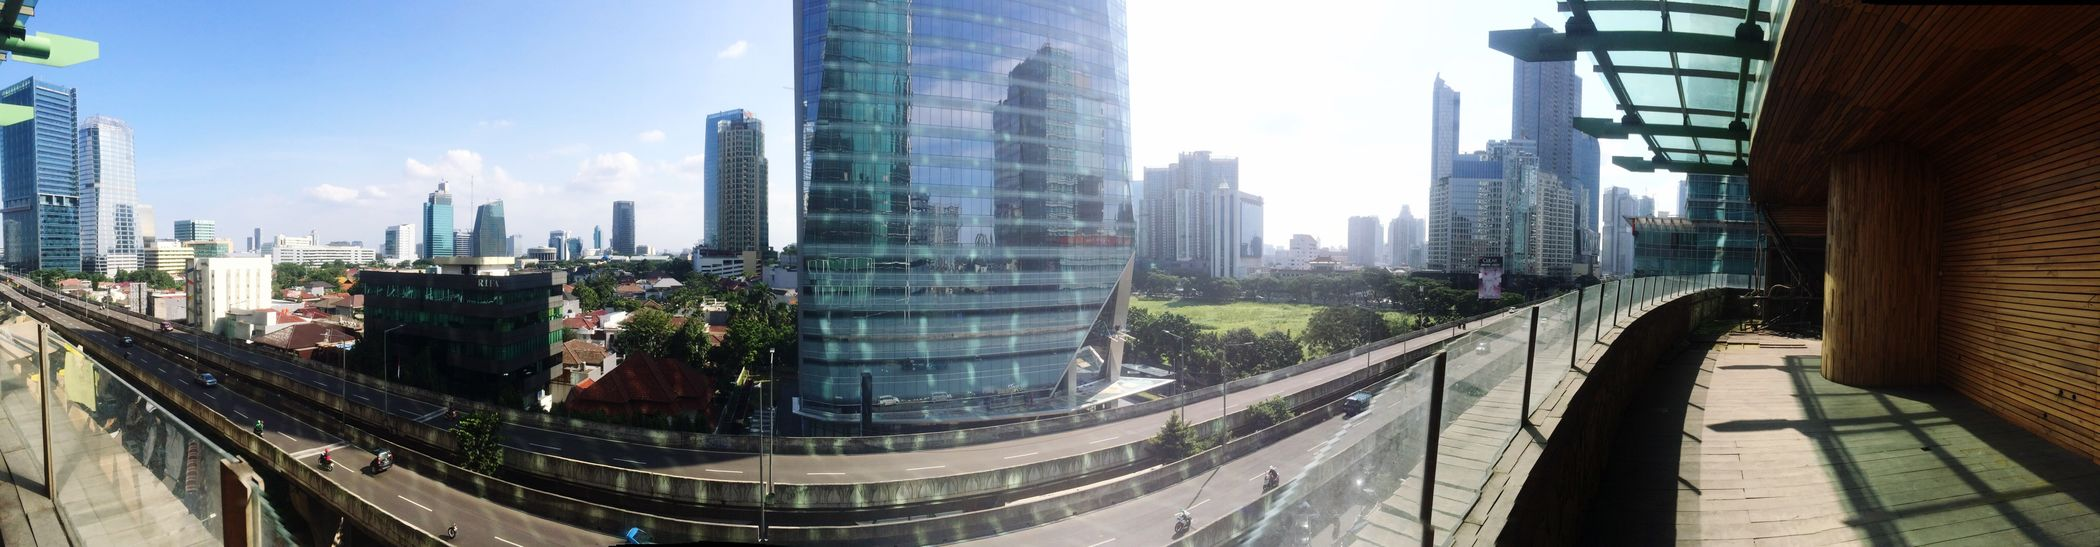 City Architecture Skyscraper Built Structure Building Exterior Cityscape Growth Sunlight Day Outdoors River No People Sky Urban Skyline Tree Downtown District Office Park